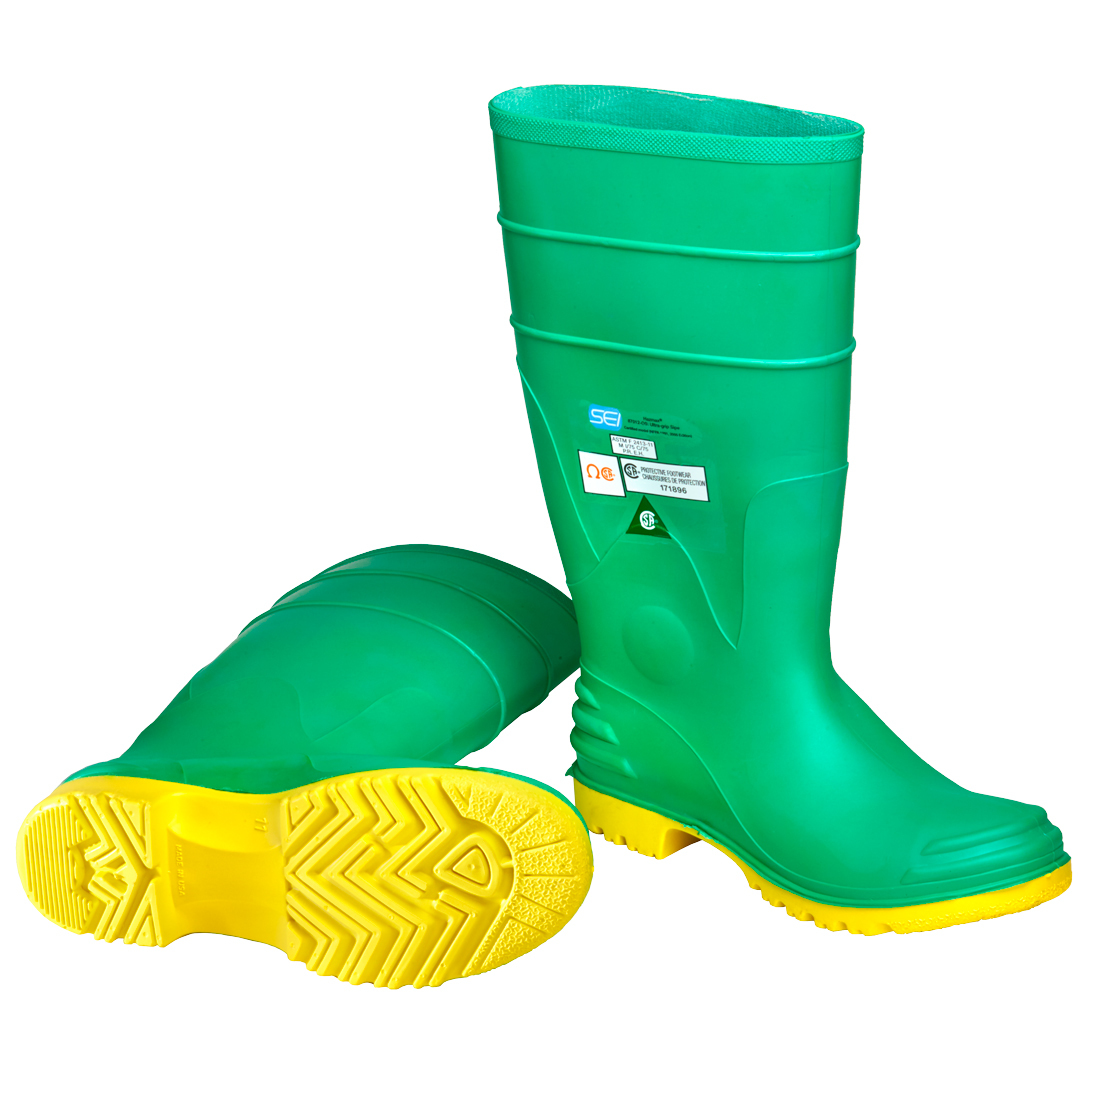 Shop Chemical Resistant Boots at DQE